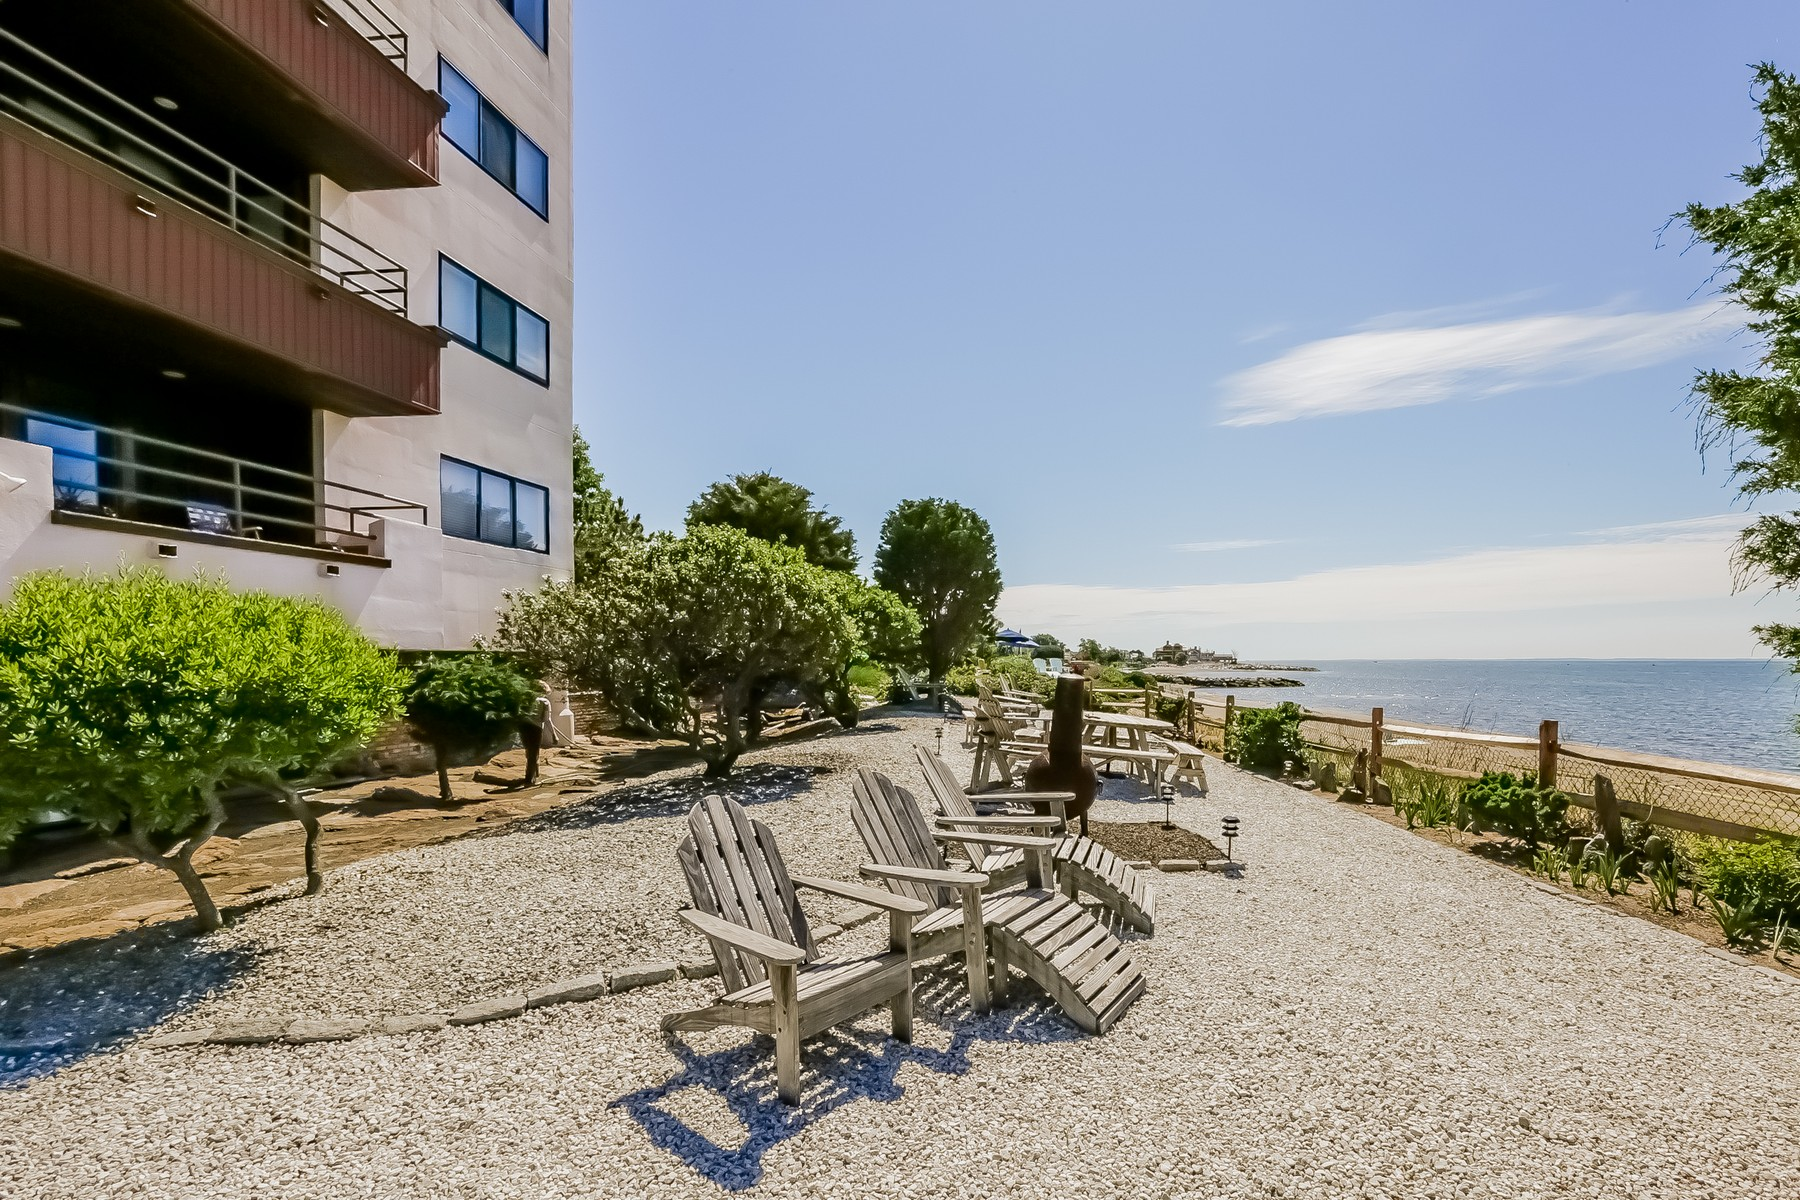 Property For Sale at Luxury Penthouse Beachfront Condo with Fabulous Views of LI Sound